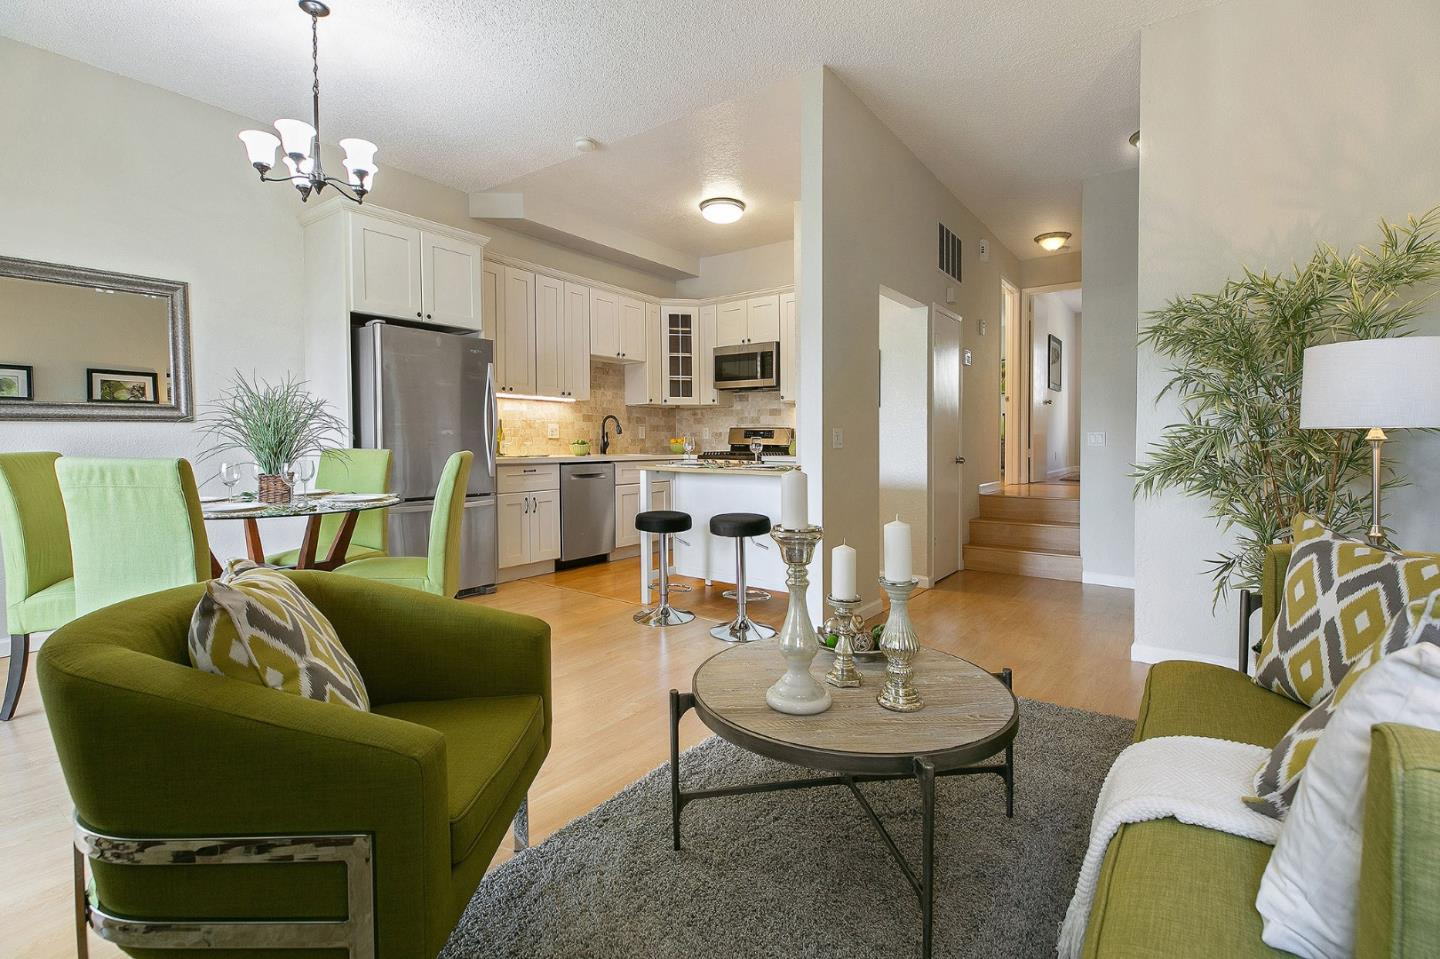 Image for 3550 Carter Drive 137, <br>South San Francisco 94080